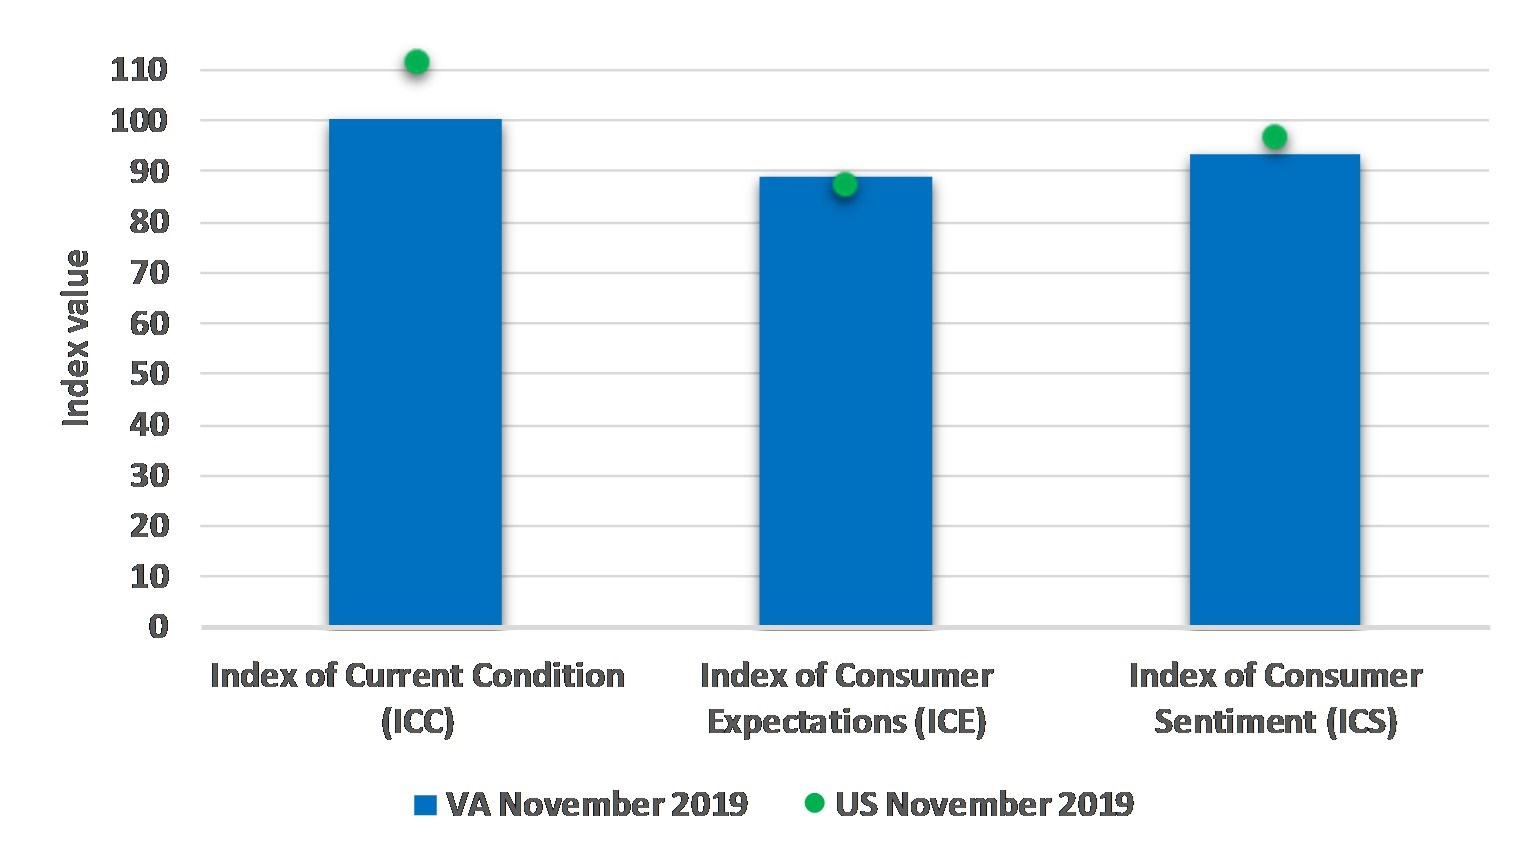 The figure is a bar chart showing the three sentiment measures (current conditions, expectations, and overall sentiment) for both the US and Virginia in August 2019.